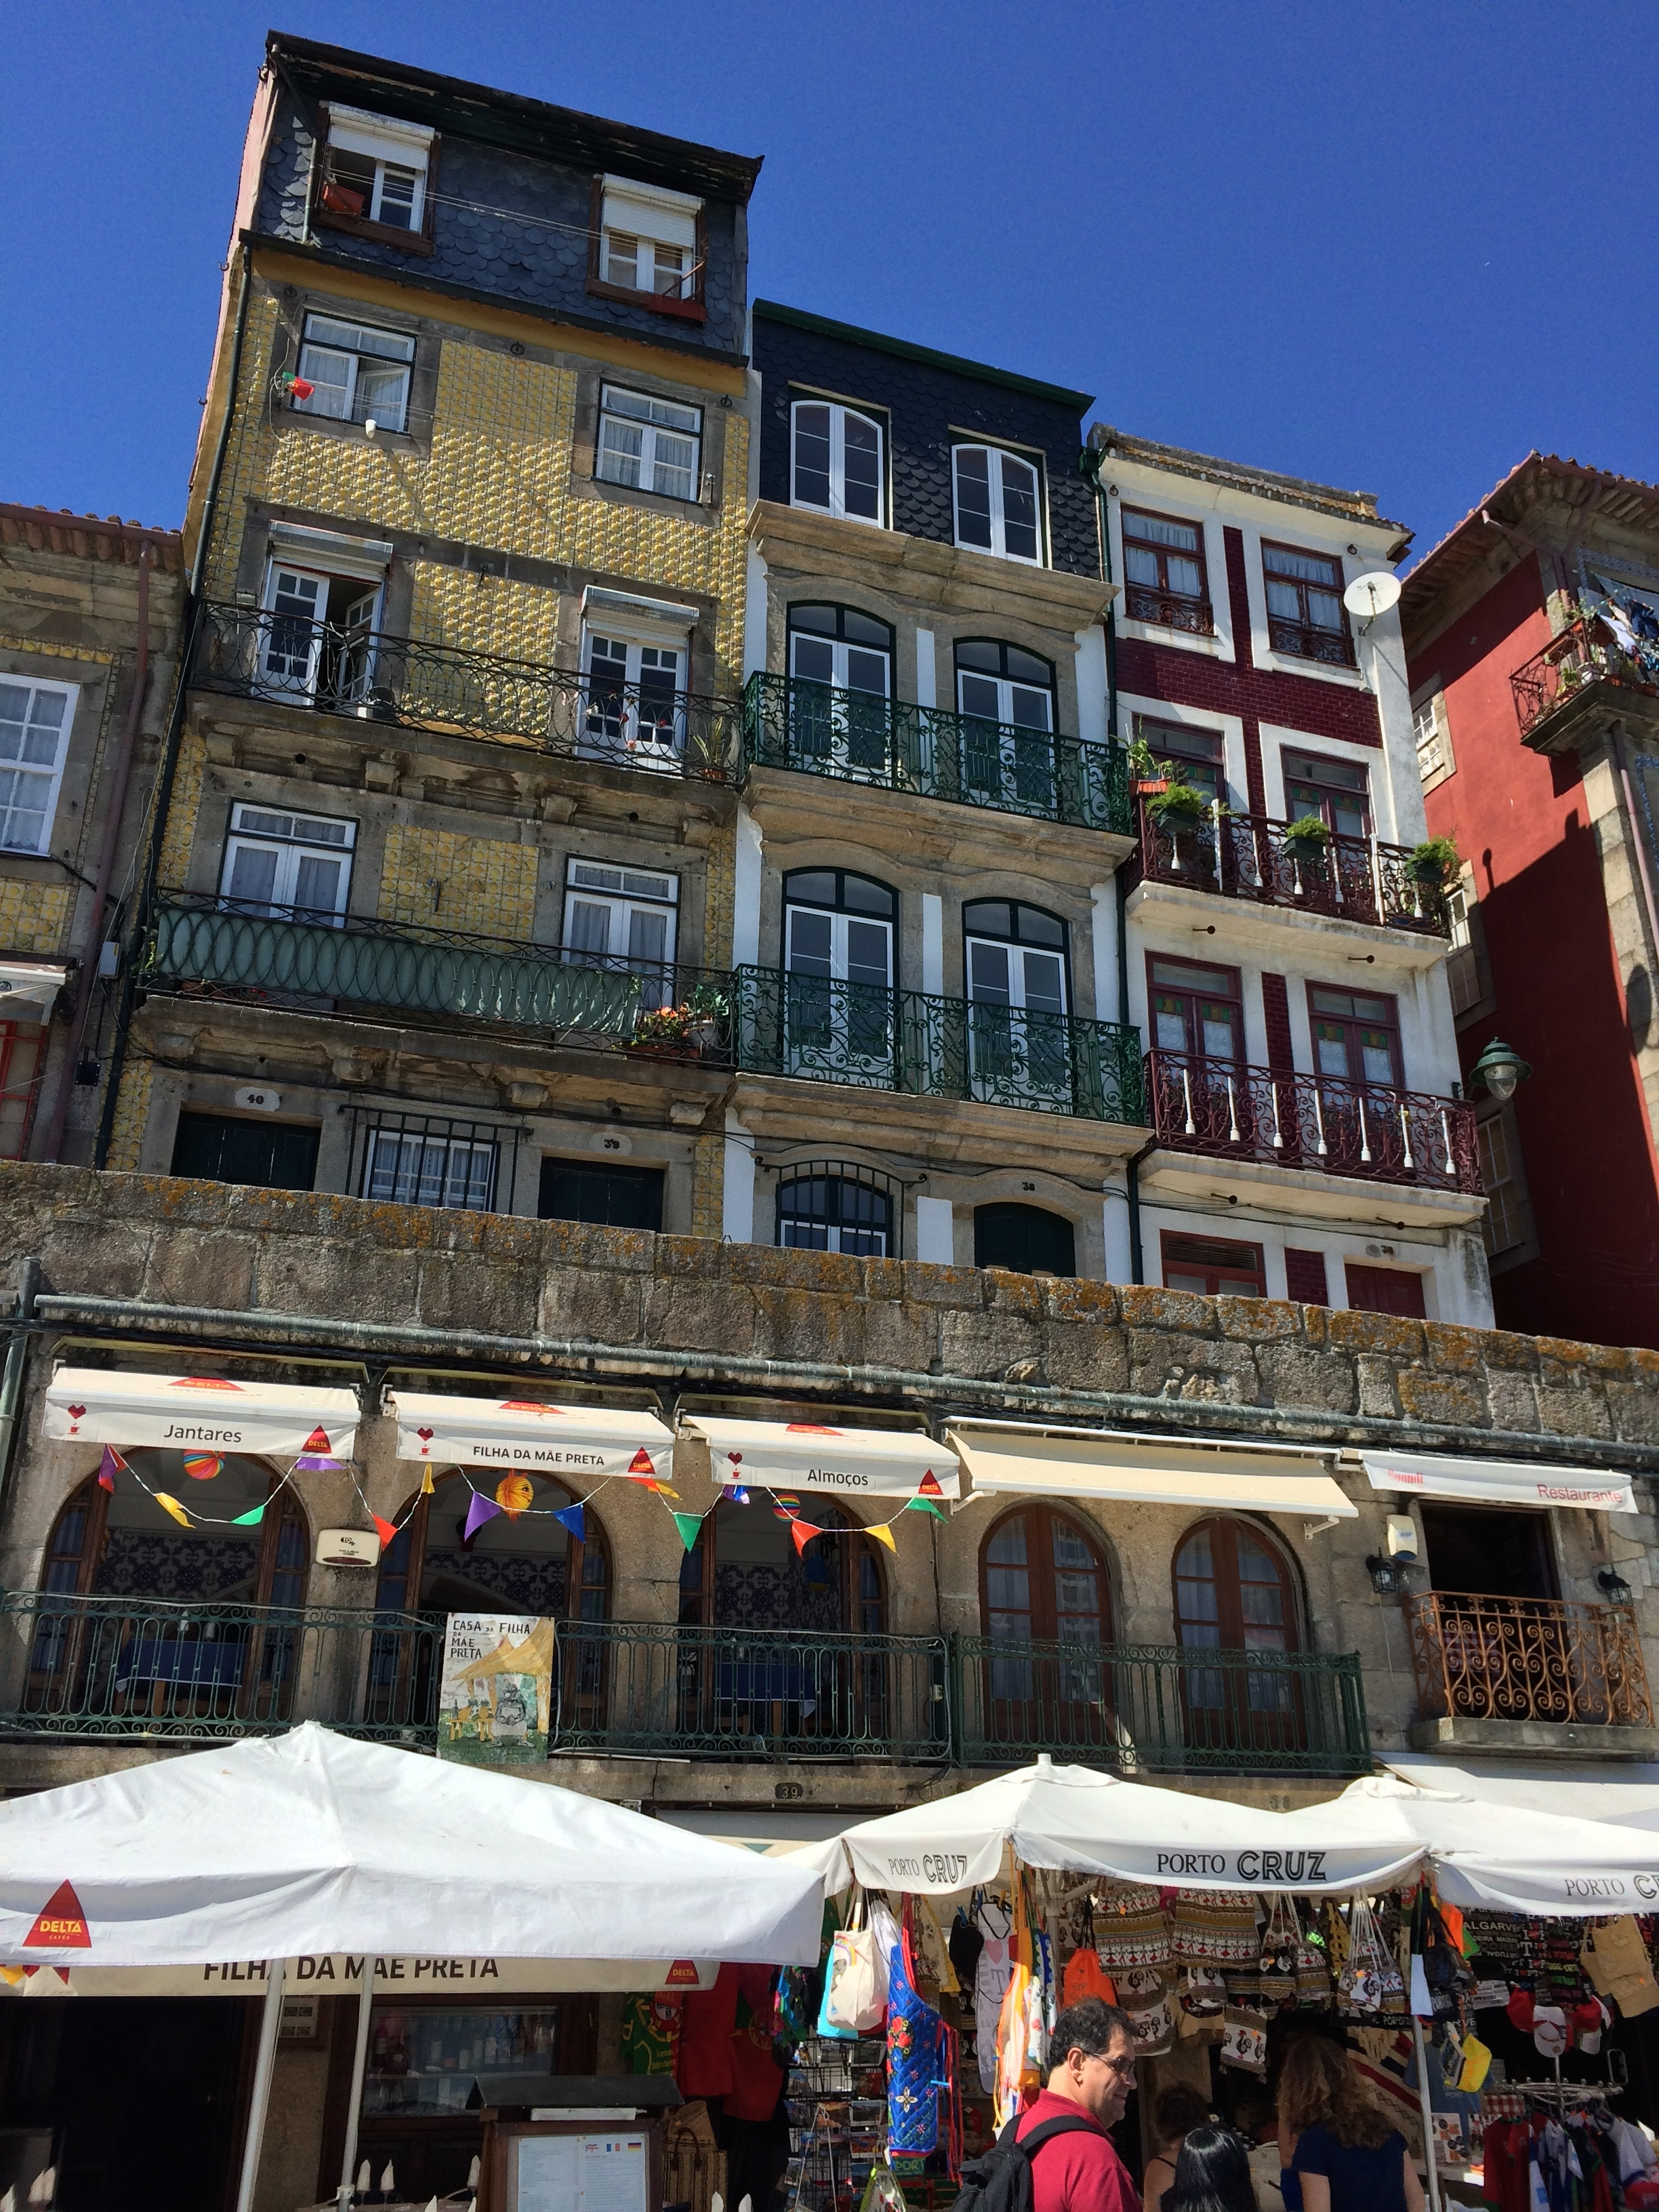 Apartments and shops in theRibeira district next to the Douro River.